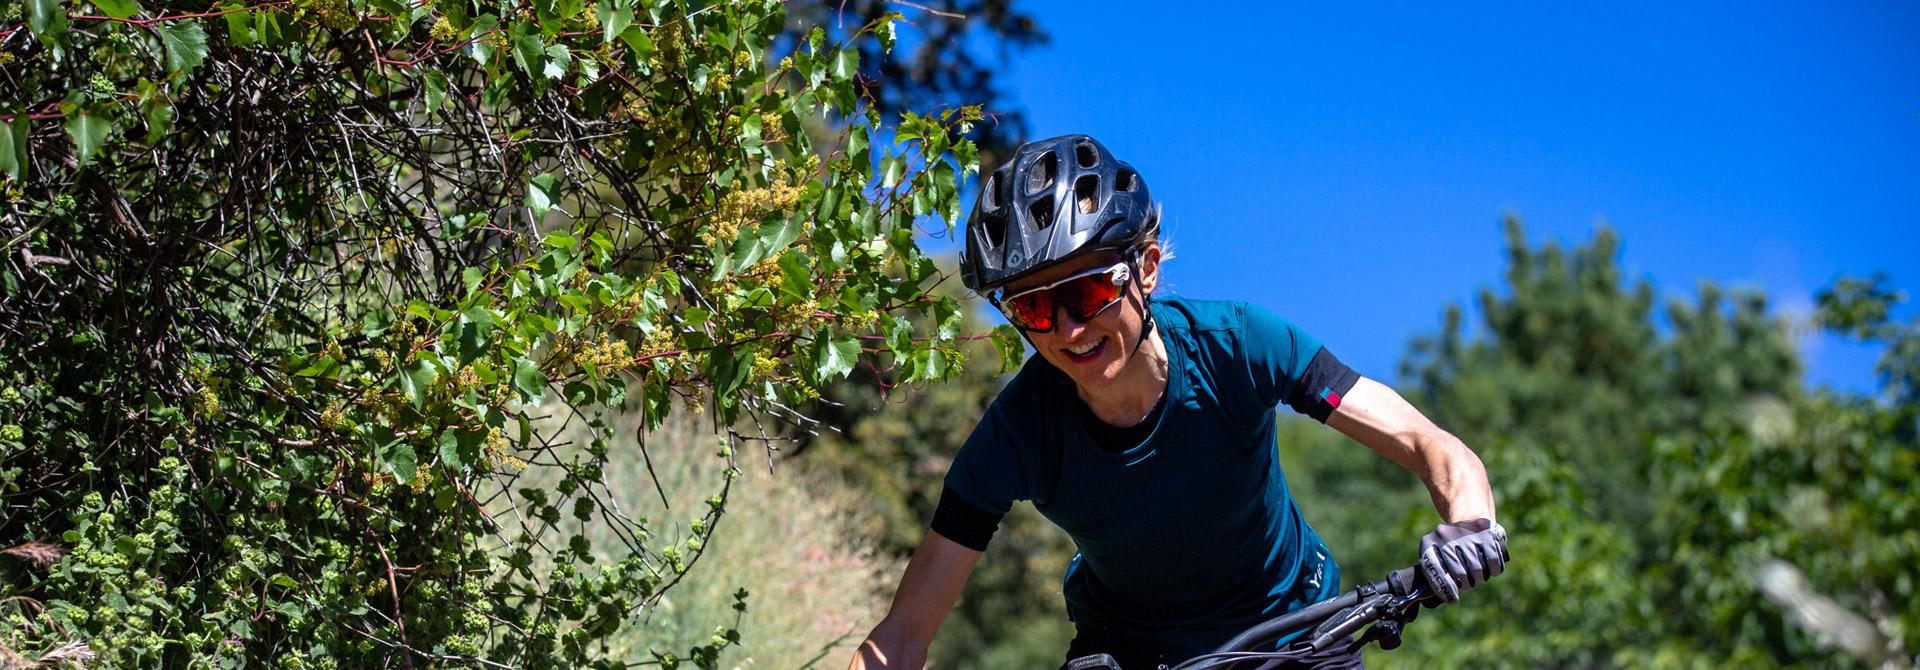 Woman mountain biker